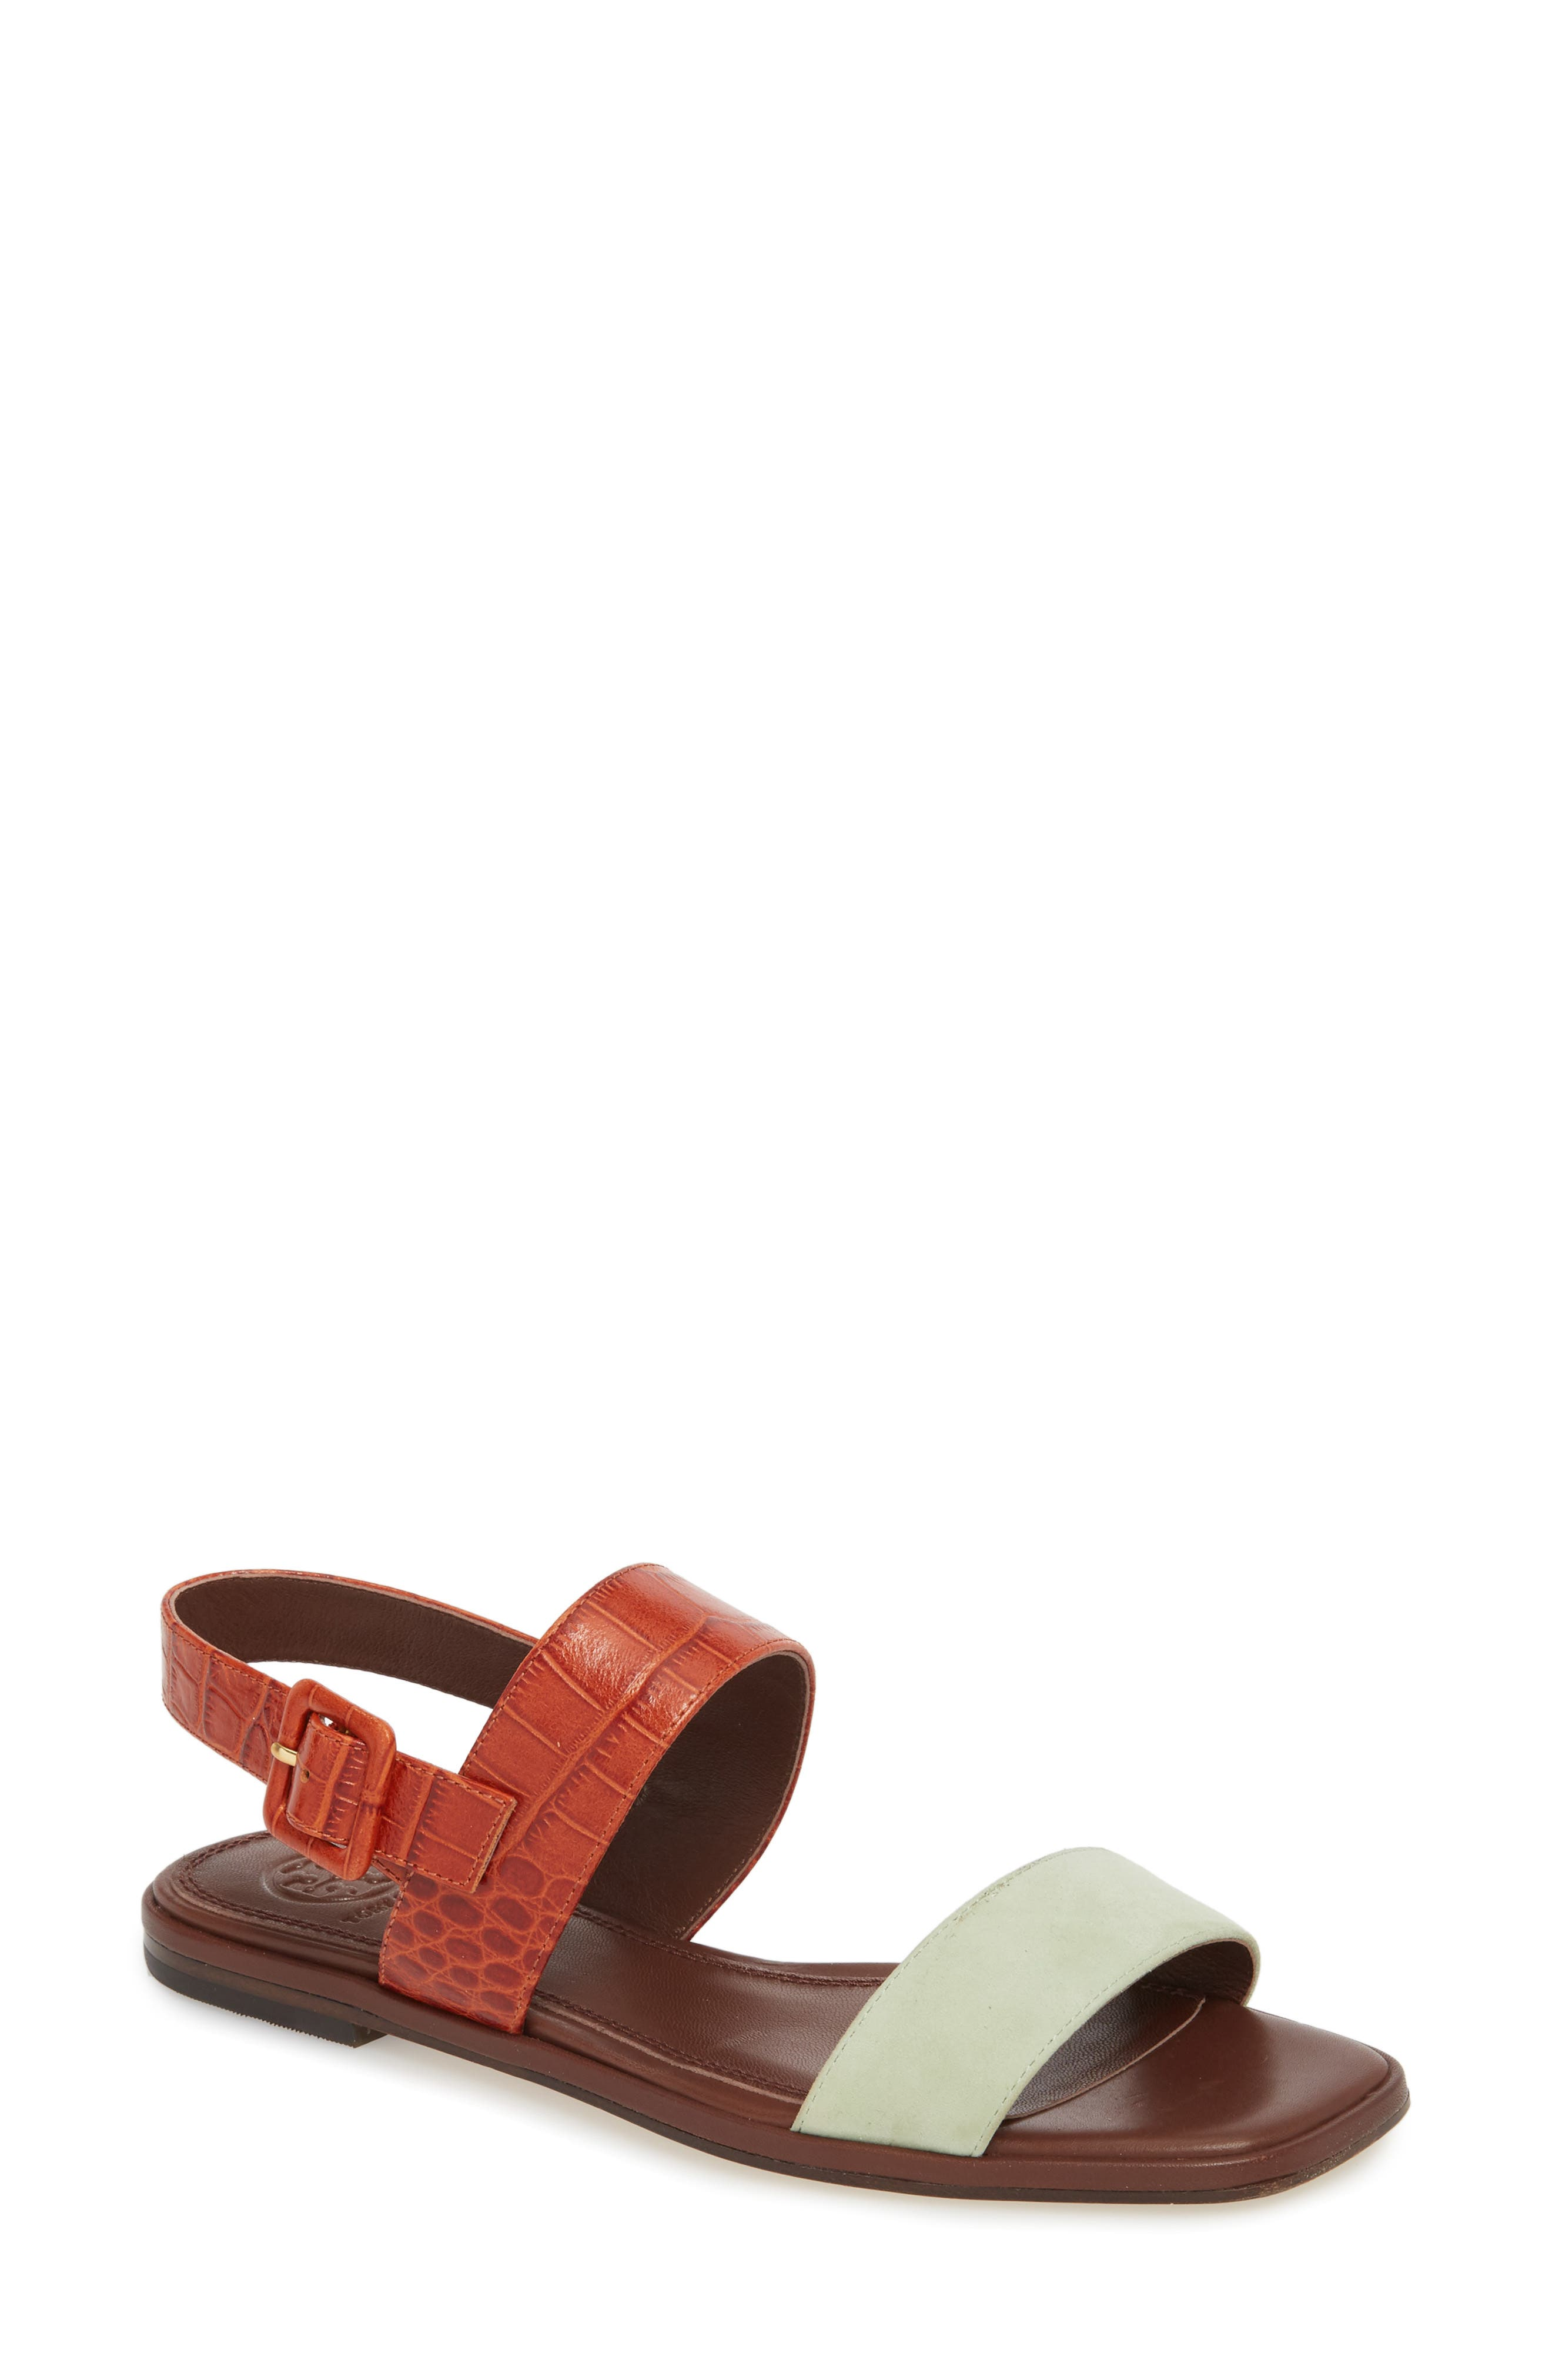 Delaney Double Strap Sandal,                             Main thumbnail 6, color,